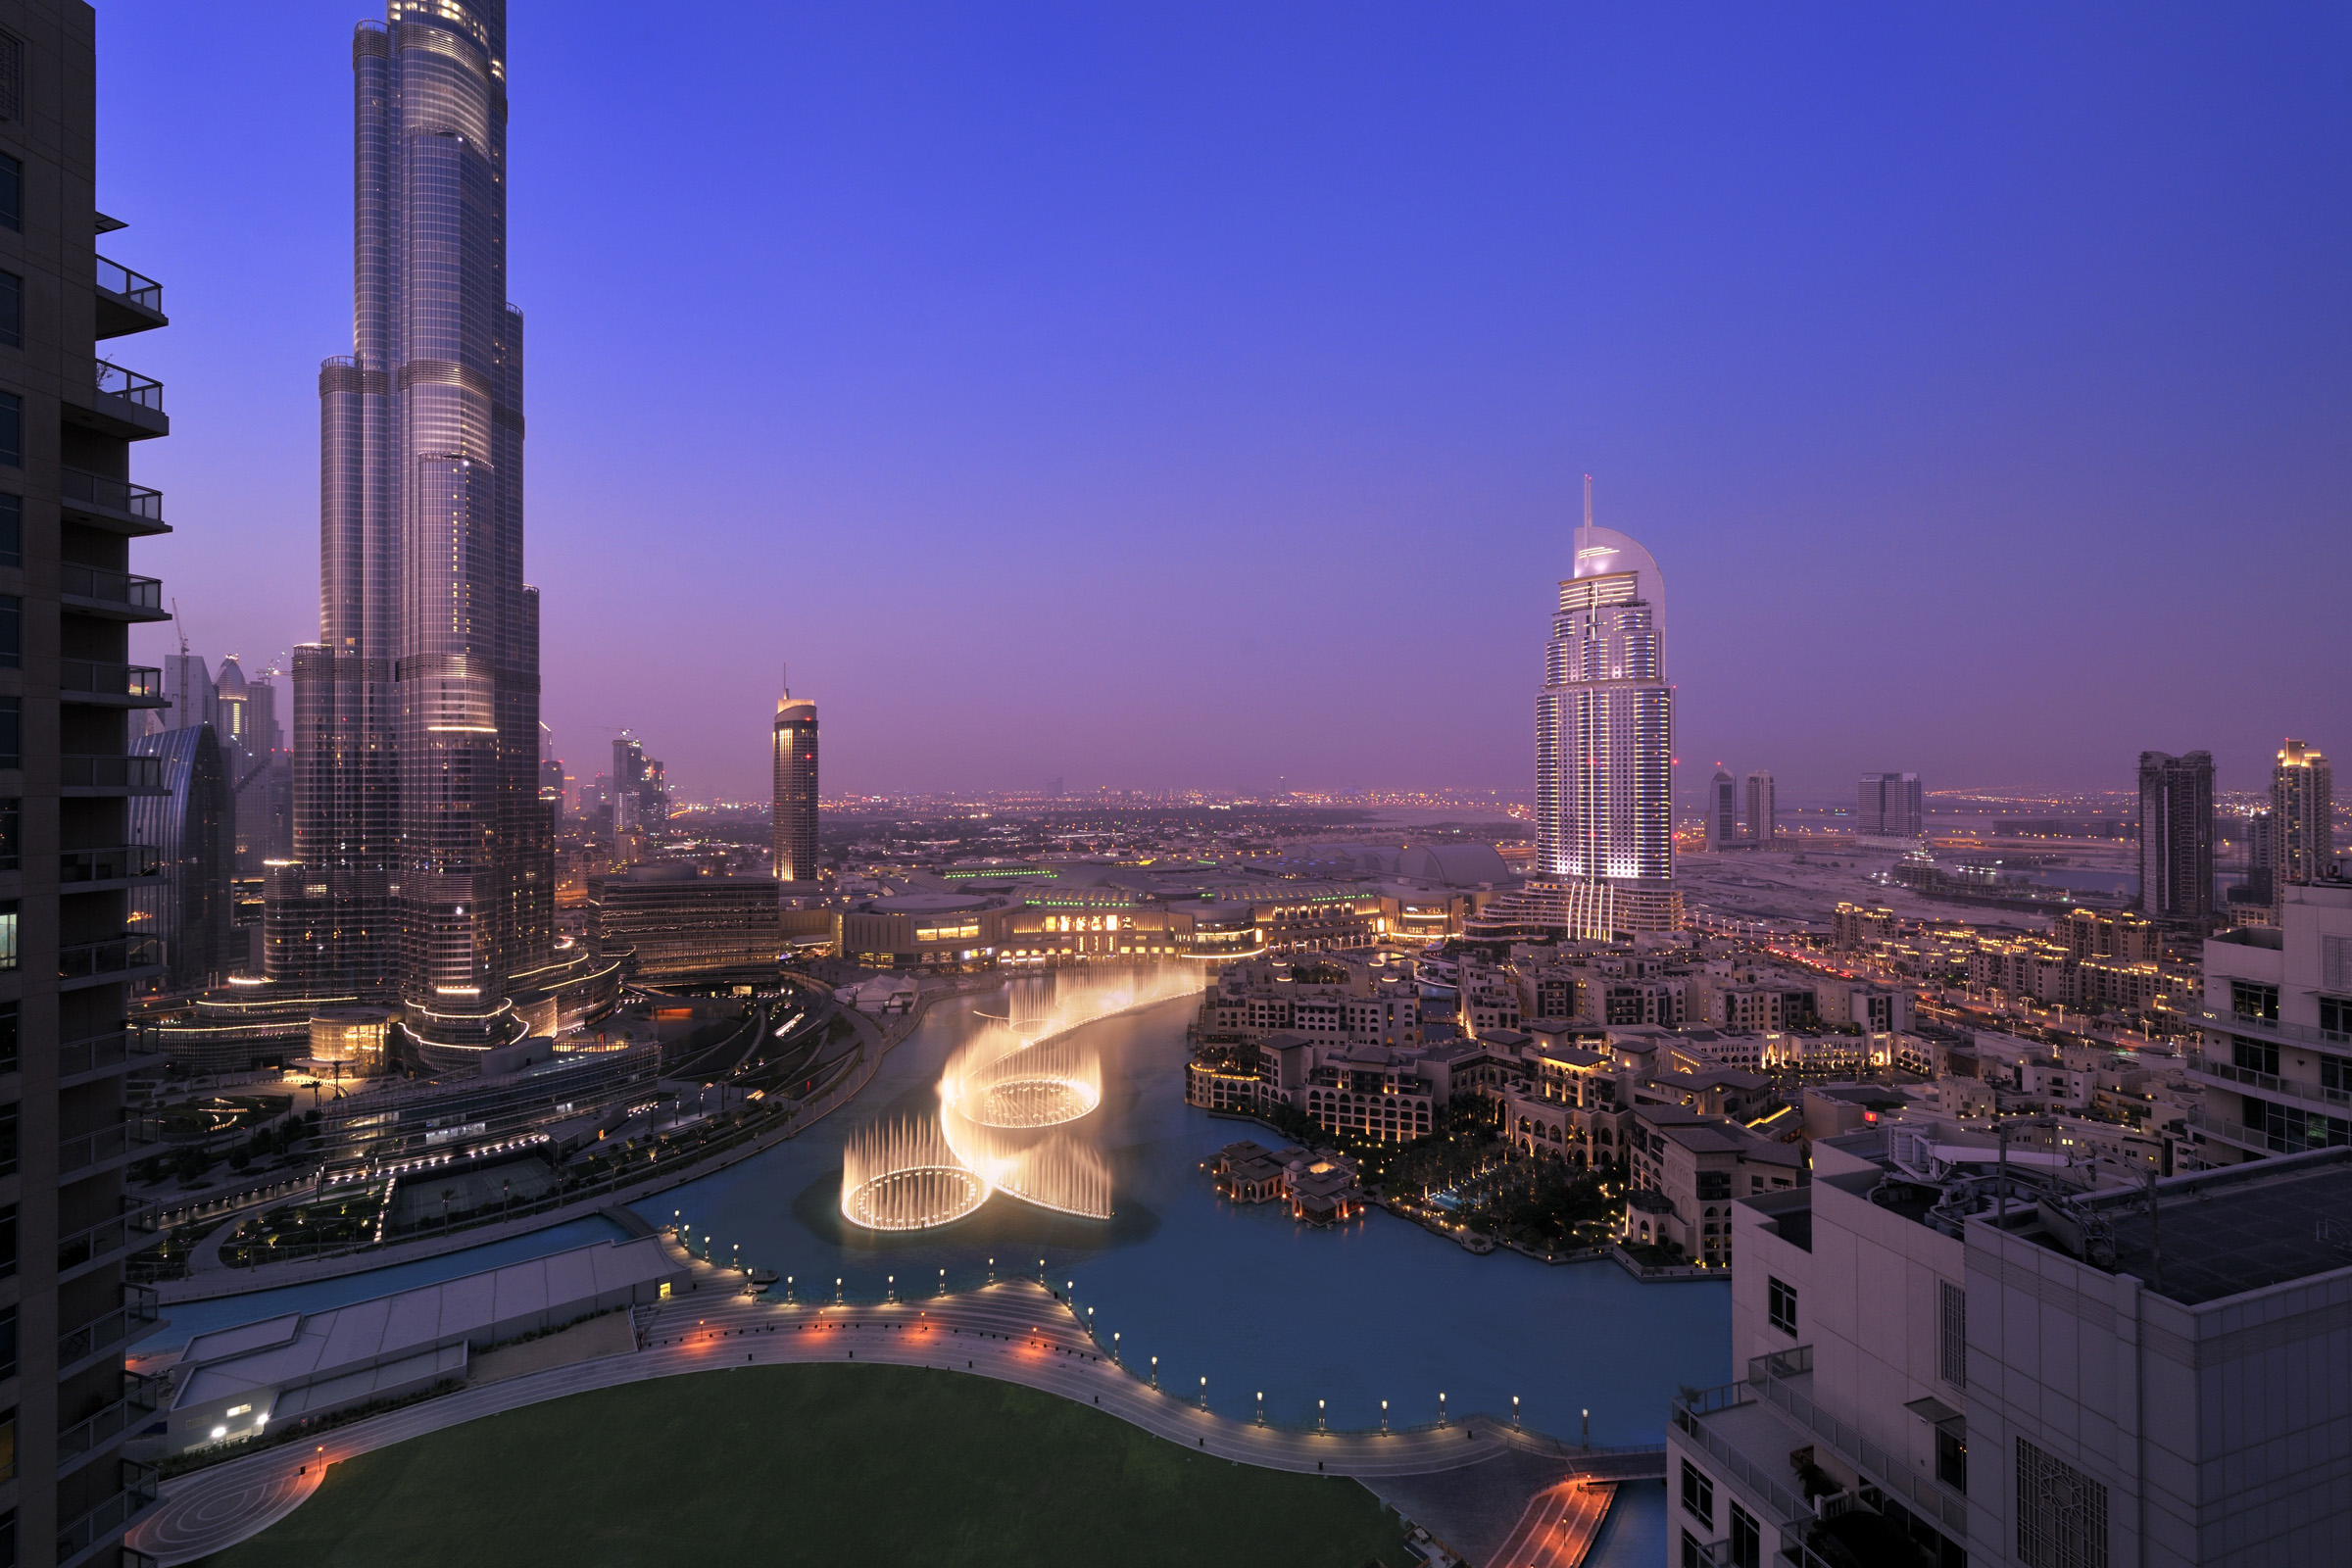 dusck view downtown dubai